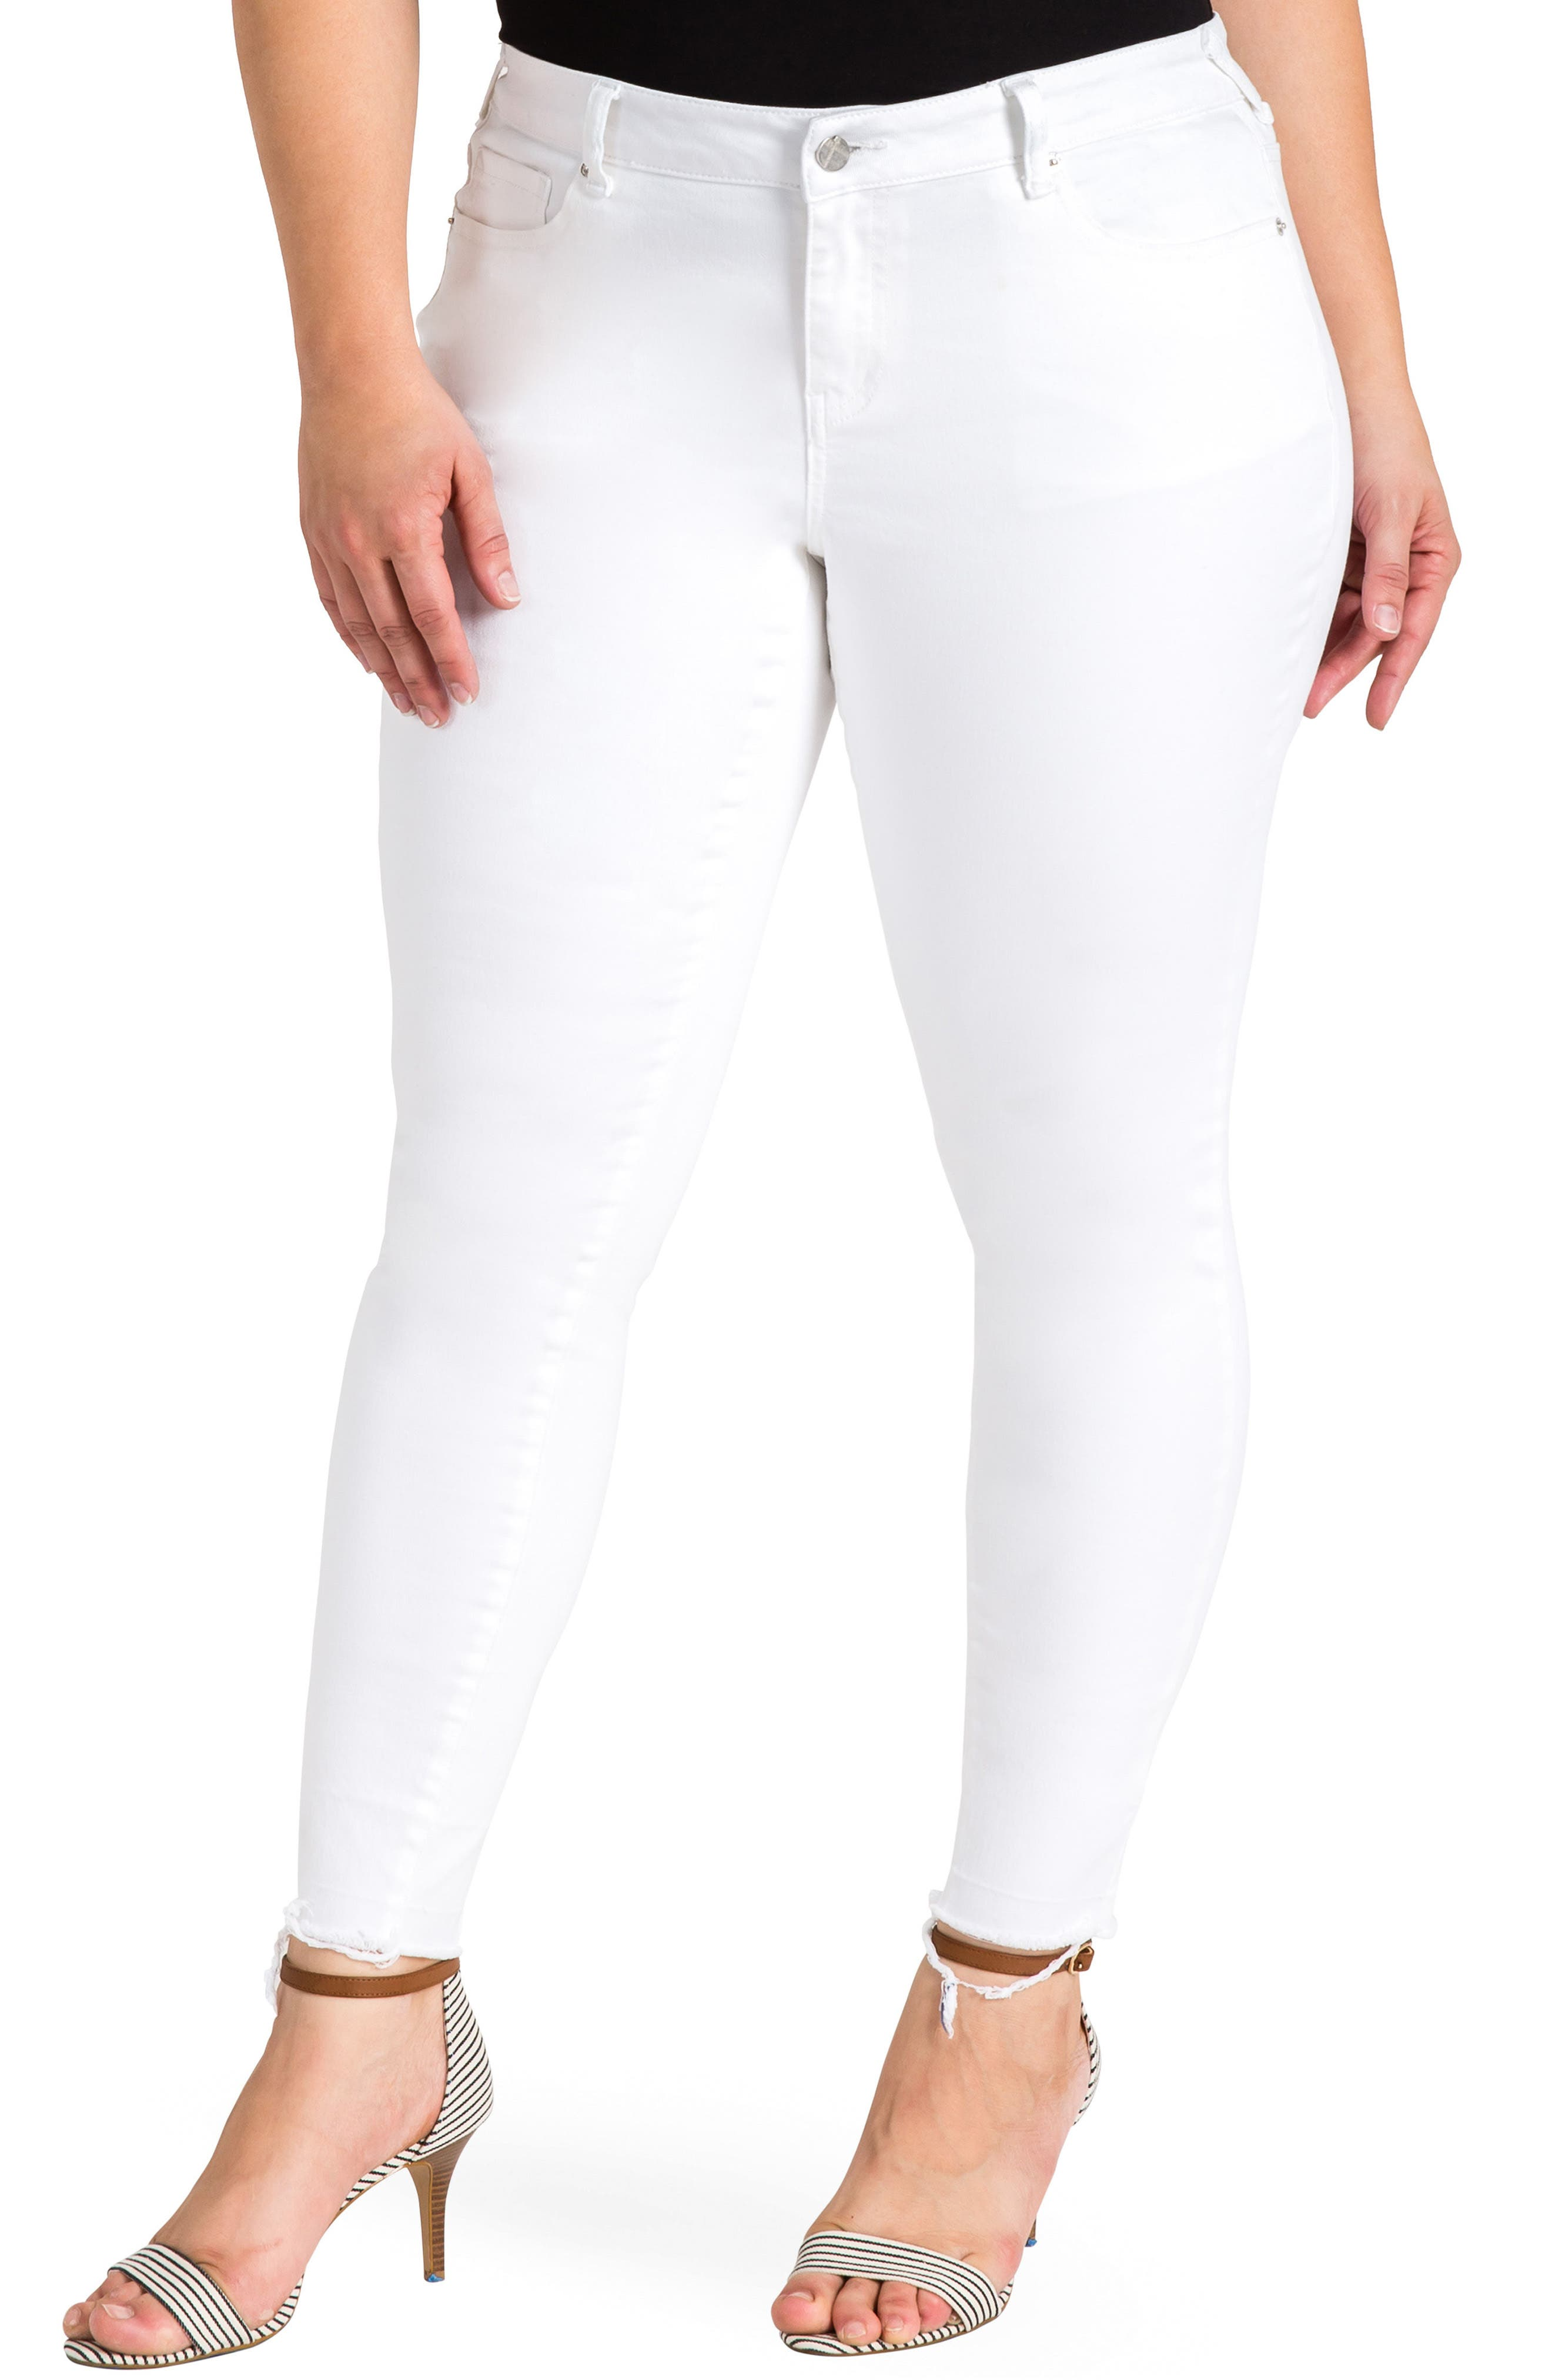 Virginia Ankle Skinny Jeans,                             Main thumbnail 1, color,                             3087POWDERWT - WHITE